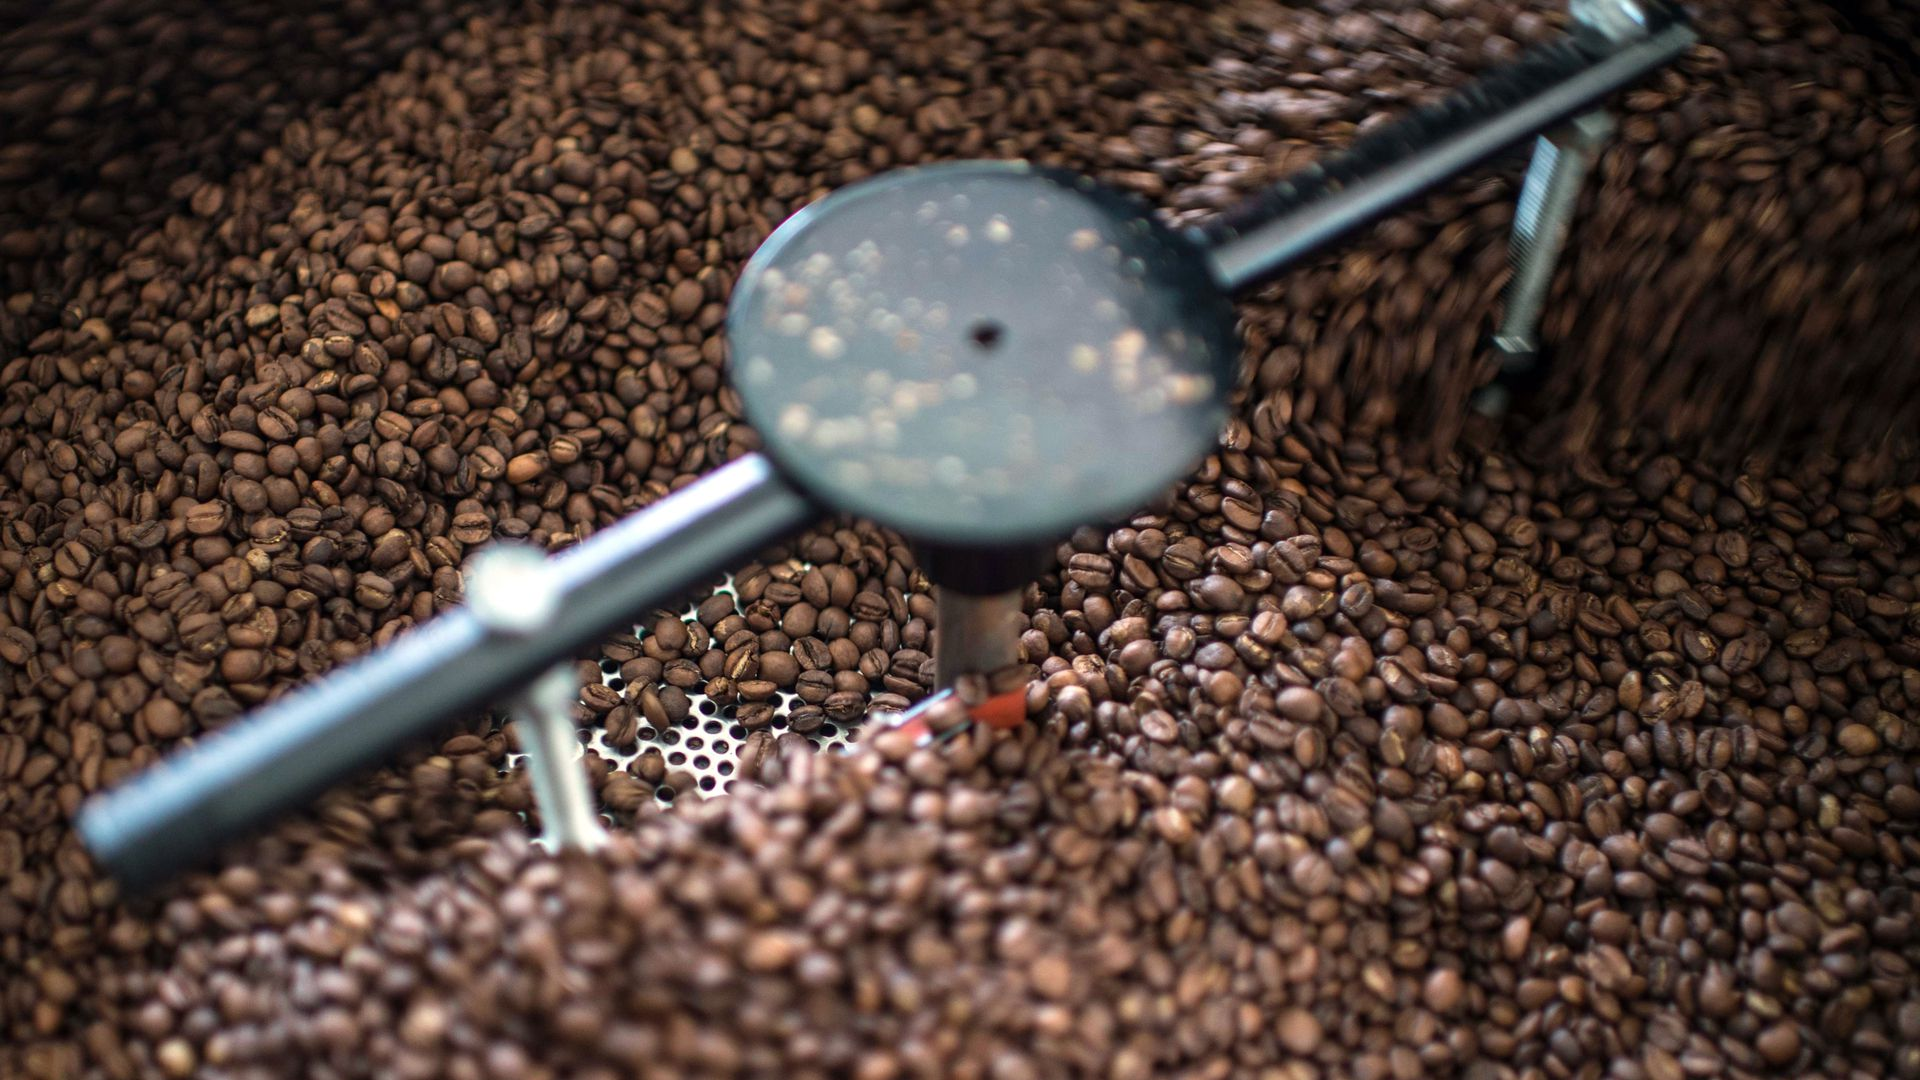 In this image, coffee beans are turned over in a larger container